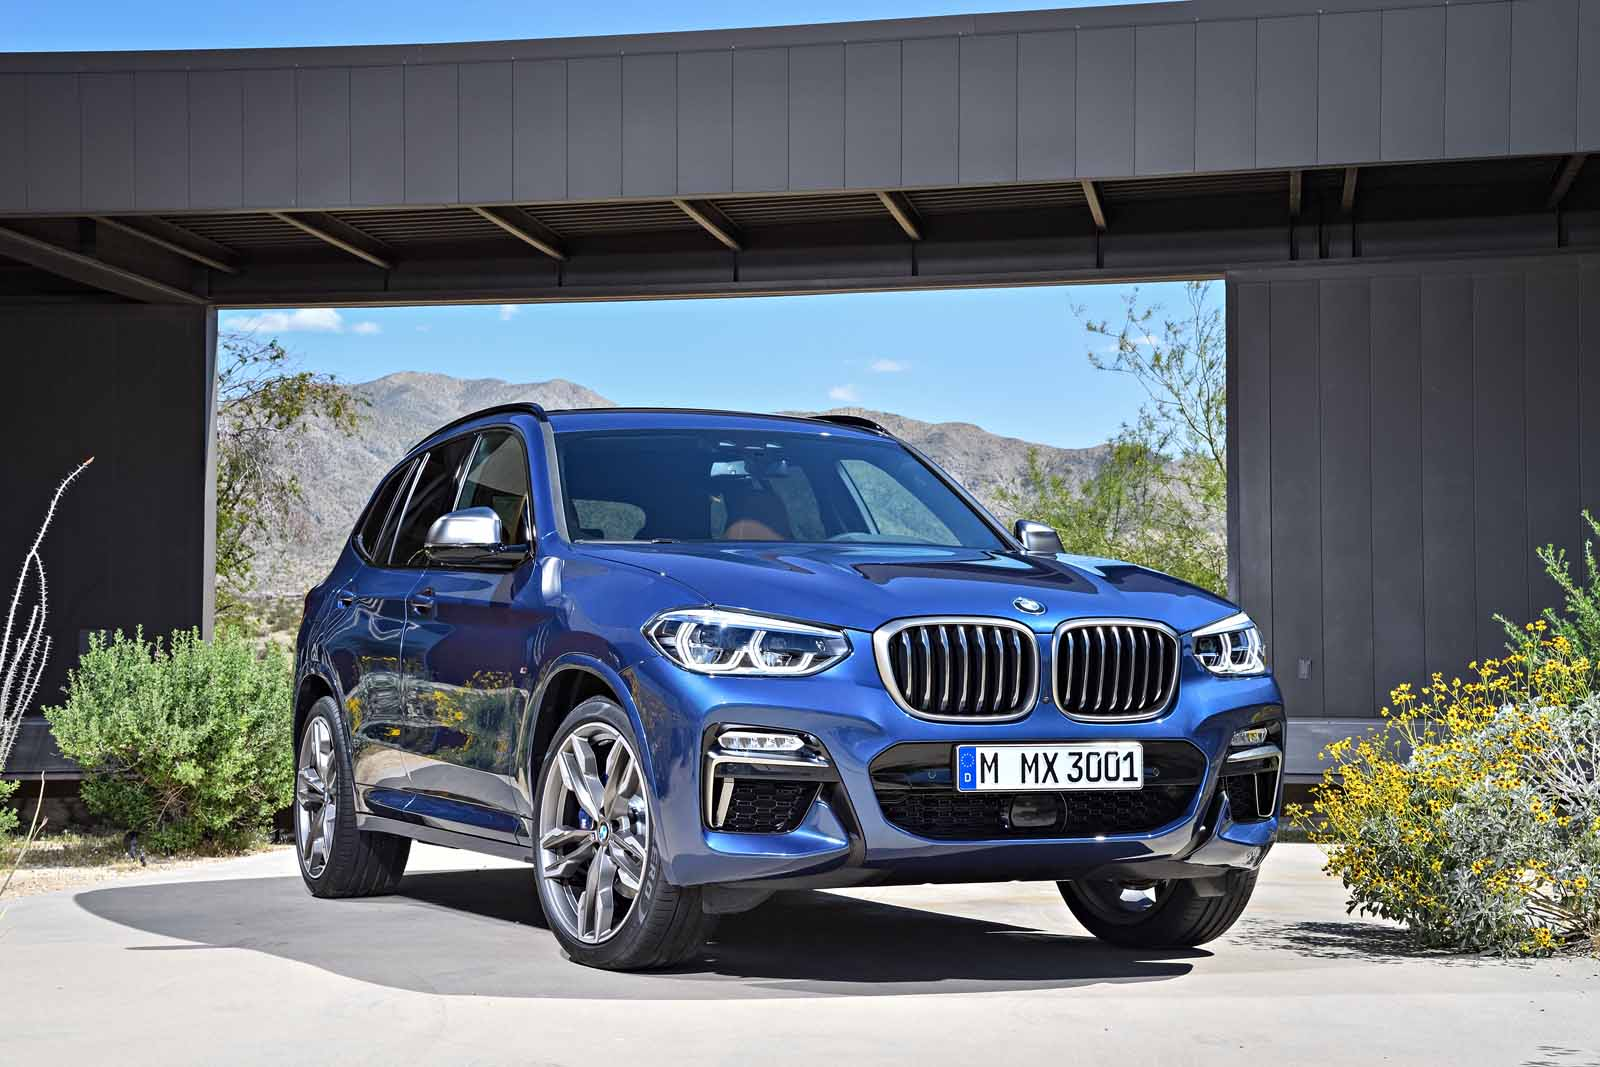 2018 bmw 135i. perfect 135i 2018 bmw x3 arrives with updated looks comfier cabin  135i forum  1seriesonlinecom in bmw